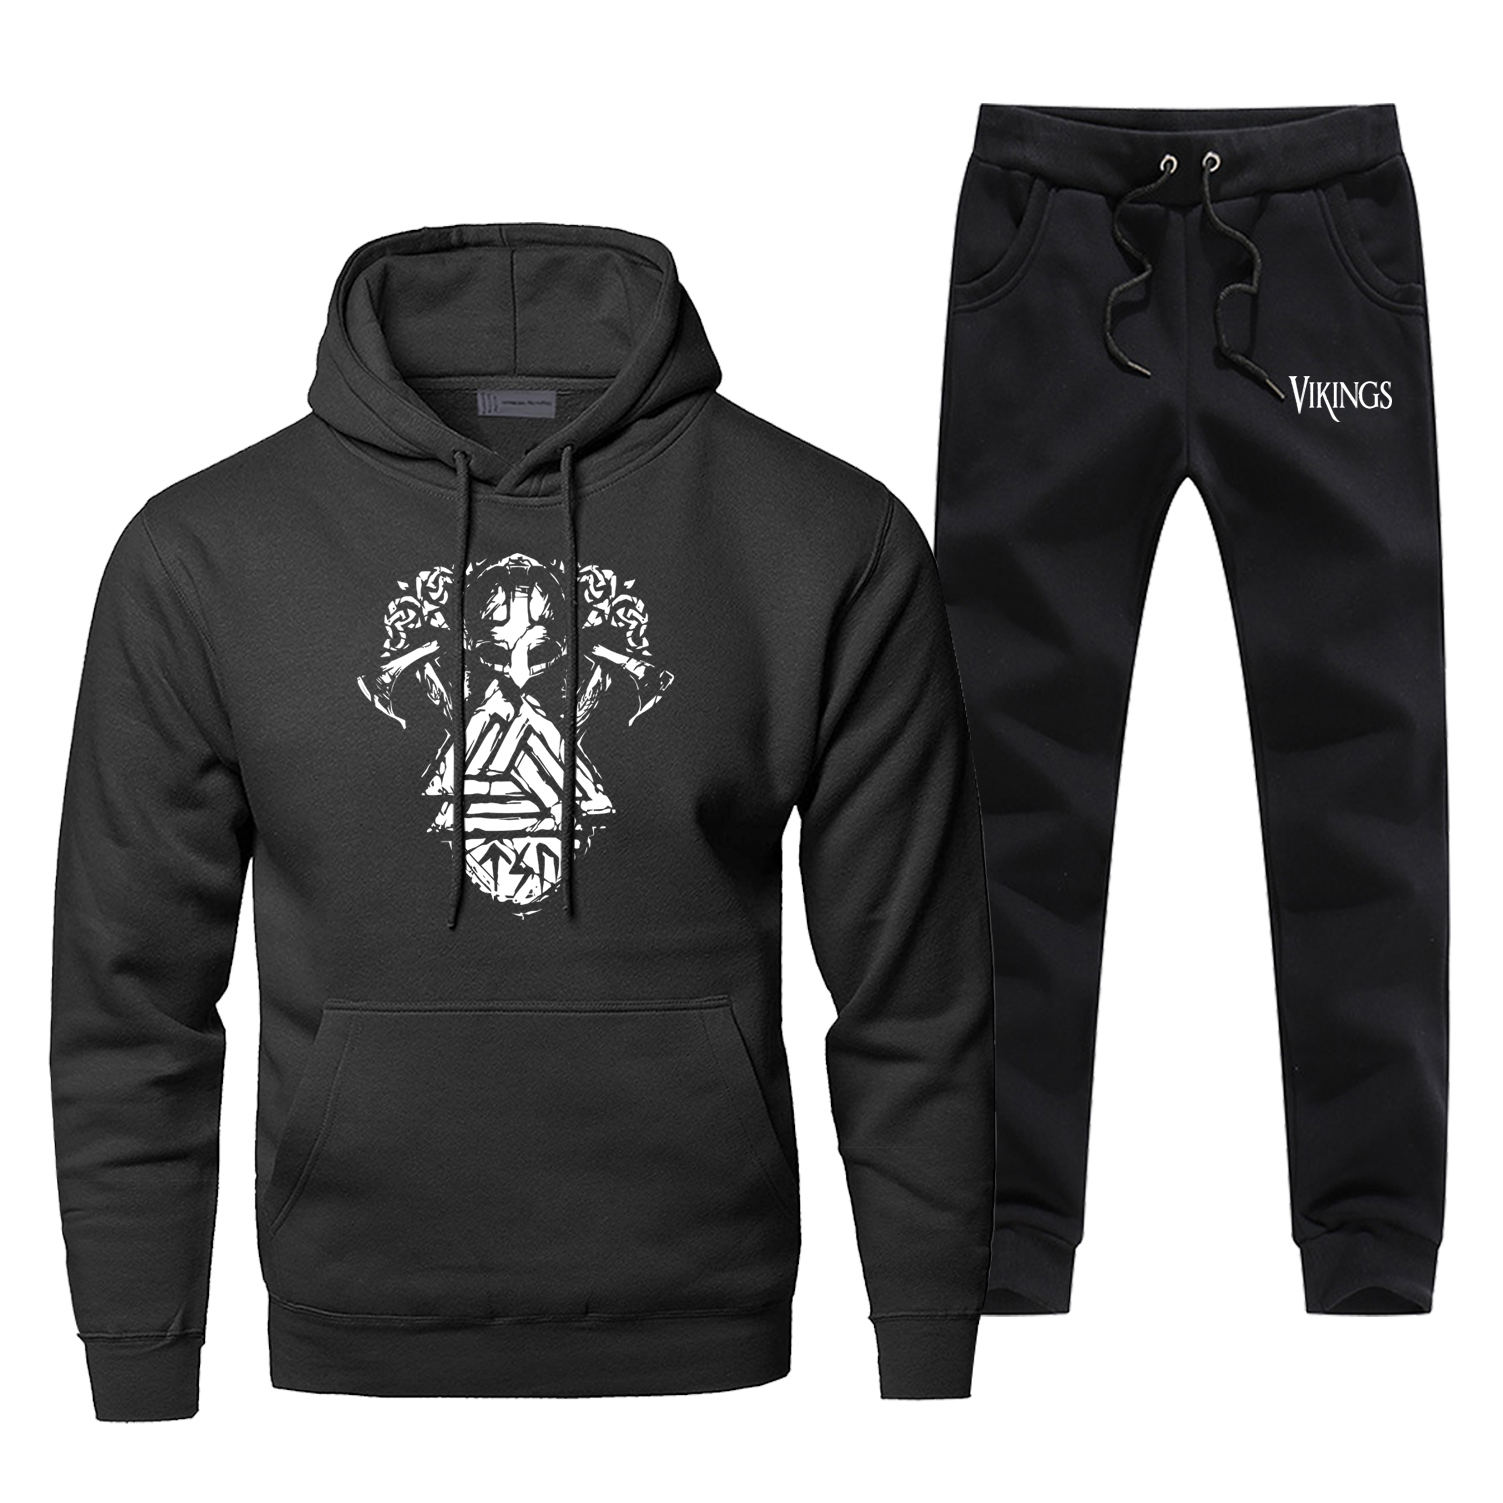 Odin Vikings Mens Hoodies Sets Two Piece Pant Sons   Hero Hoodie Sweatshirt Sweatpants Streetwear Sportswear Sweatshirts